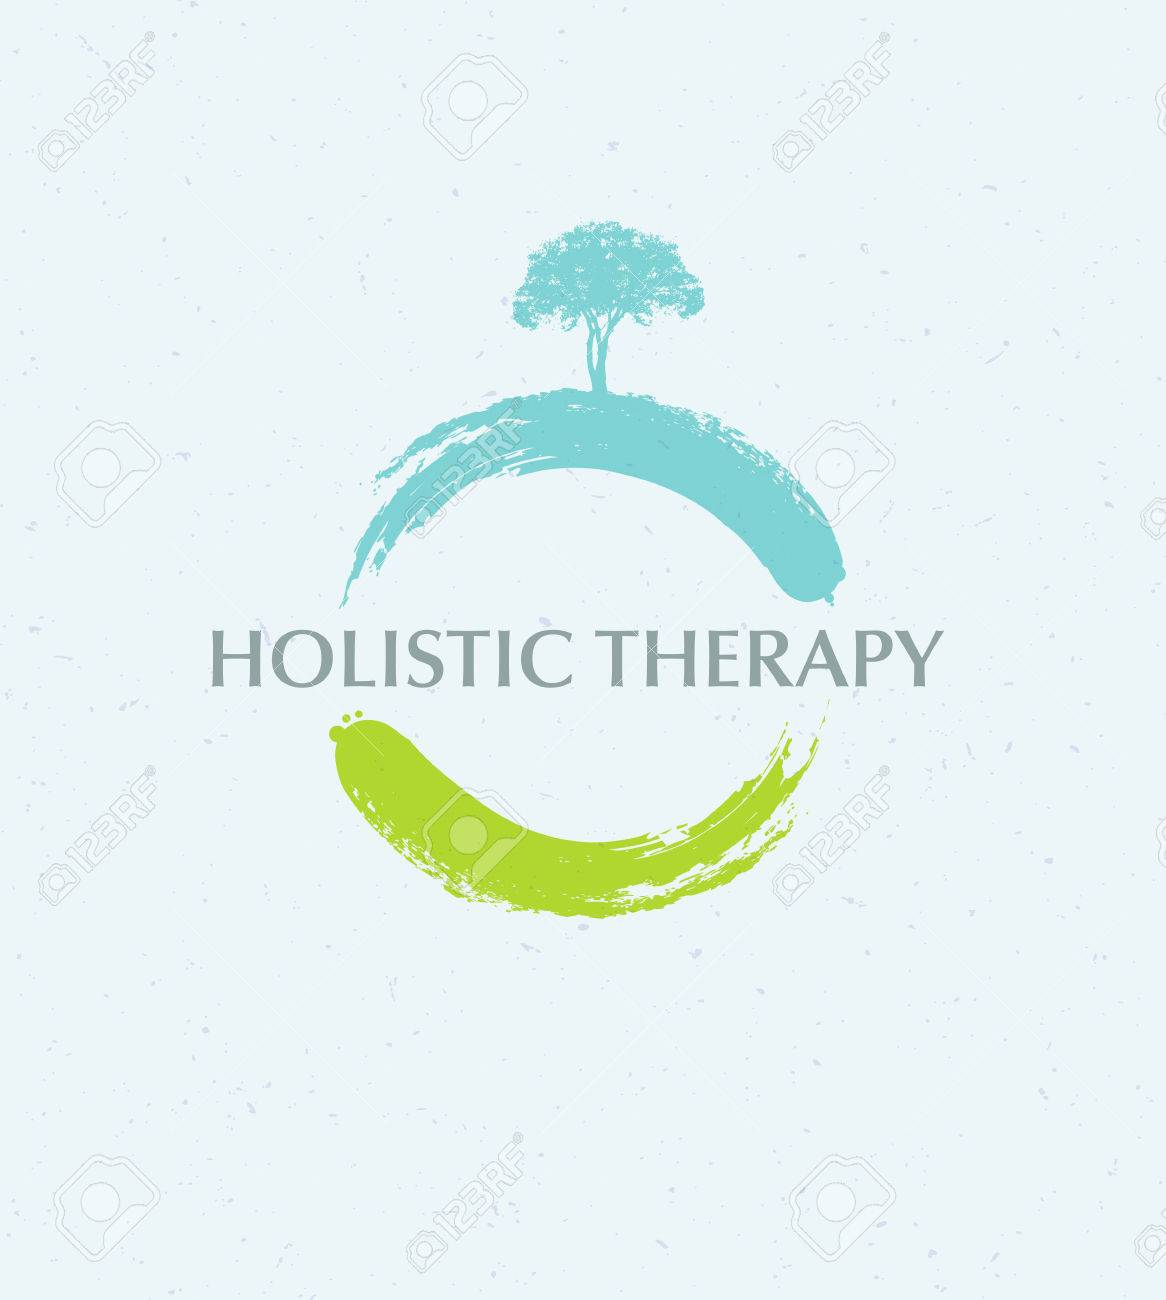 Holistic Therapy Tree With Roots On Organic Paper Background. Natural Eco Friendly Medicine Vector Concept - 72608396